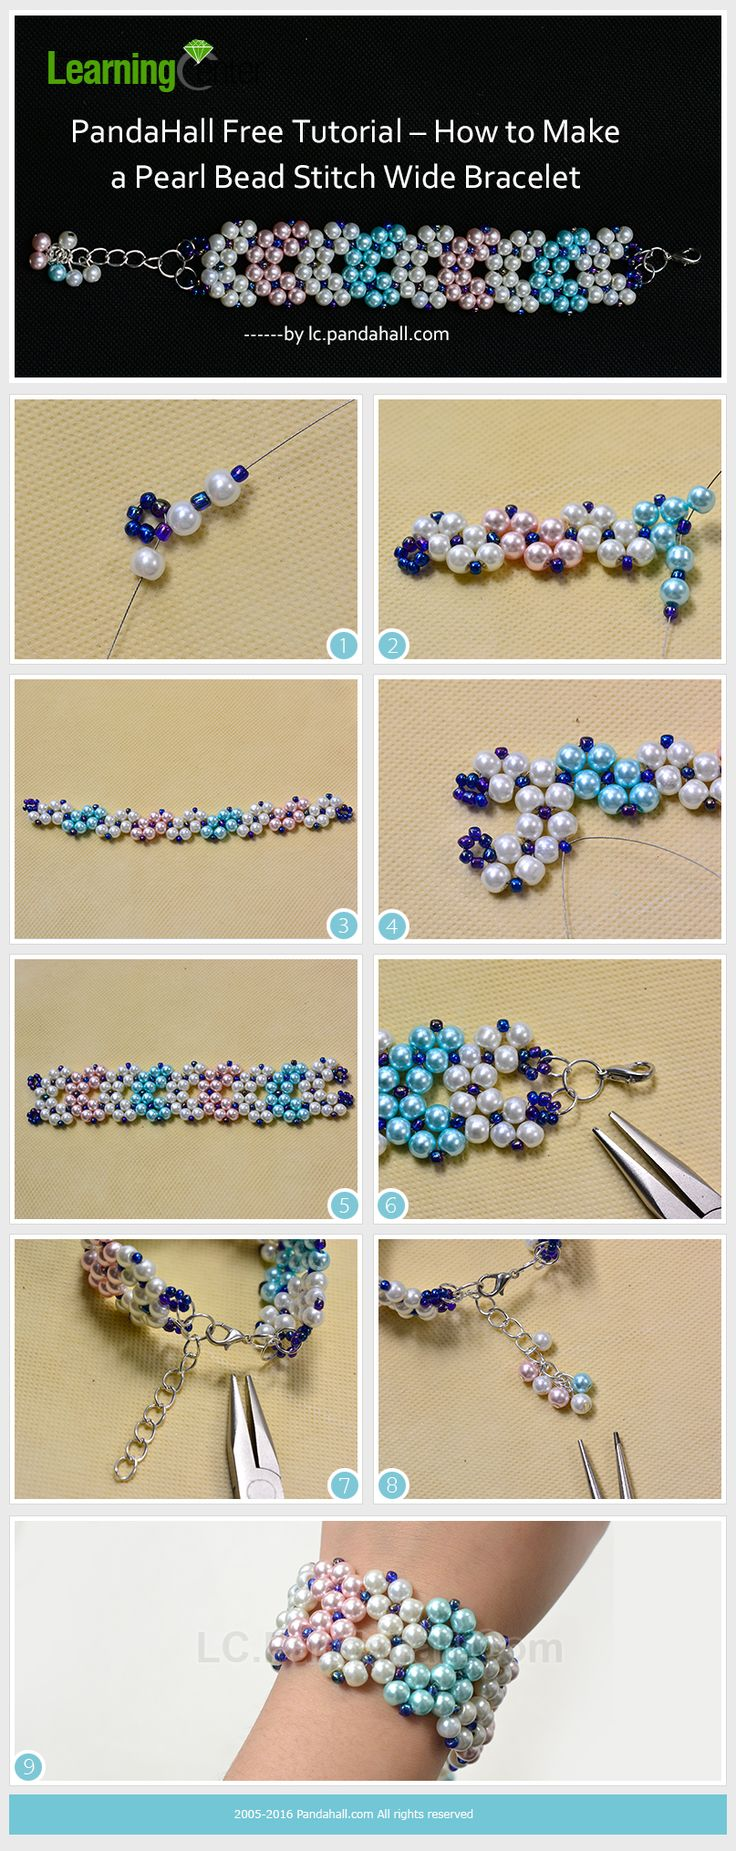 PandaHall Free Tutorial – How to Make a Pearl Bead Stitch Wide Bracelet from…